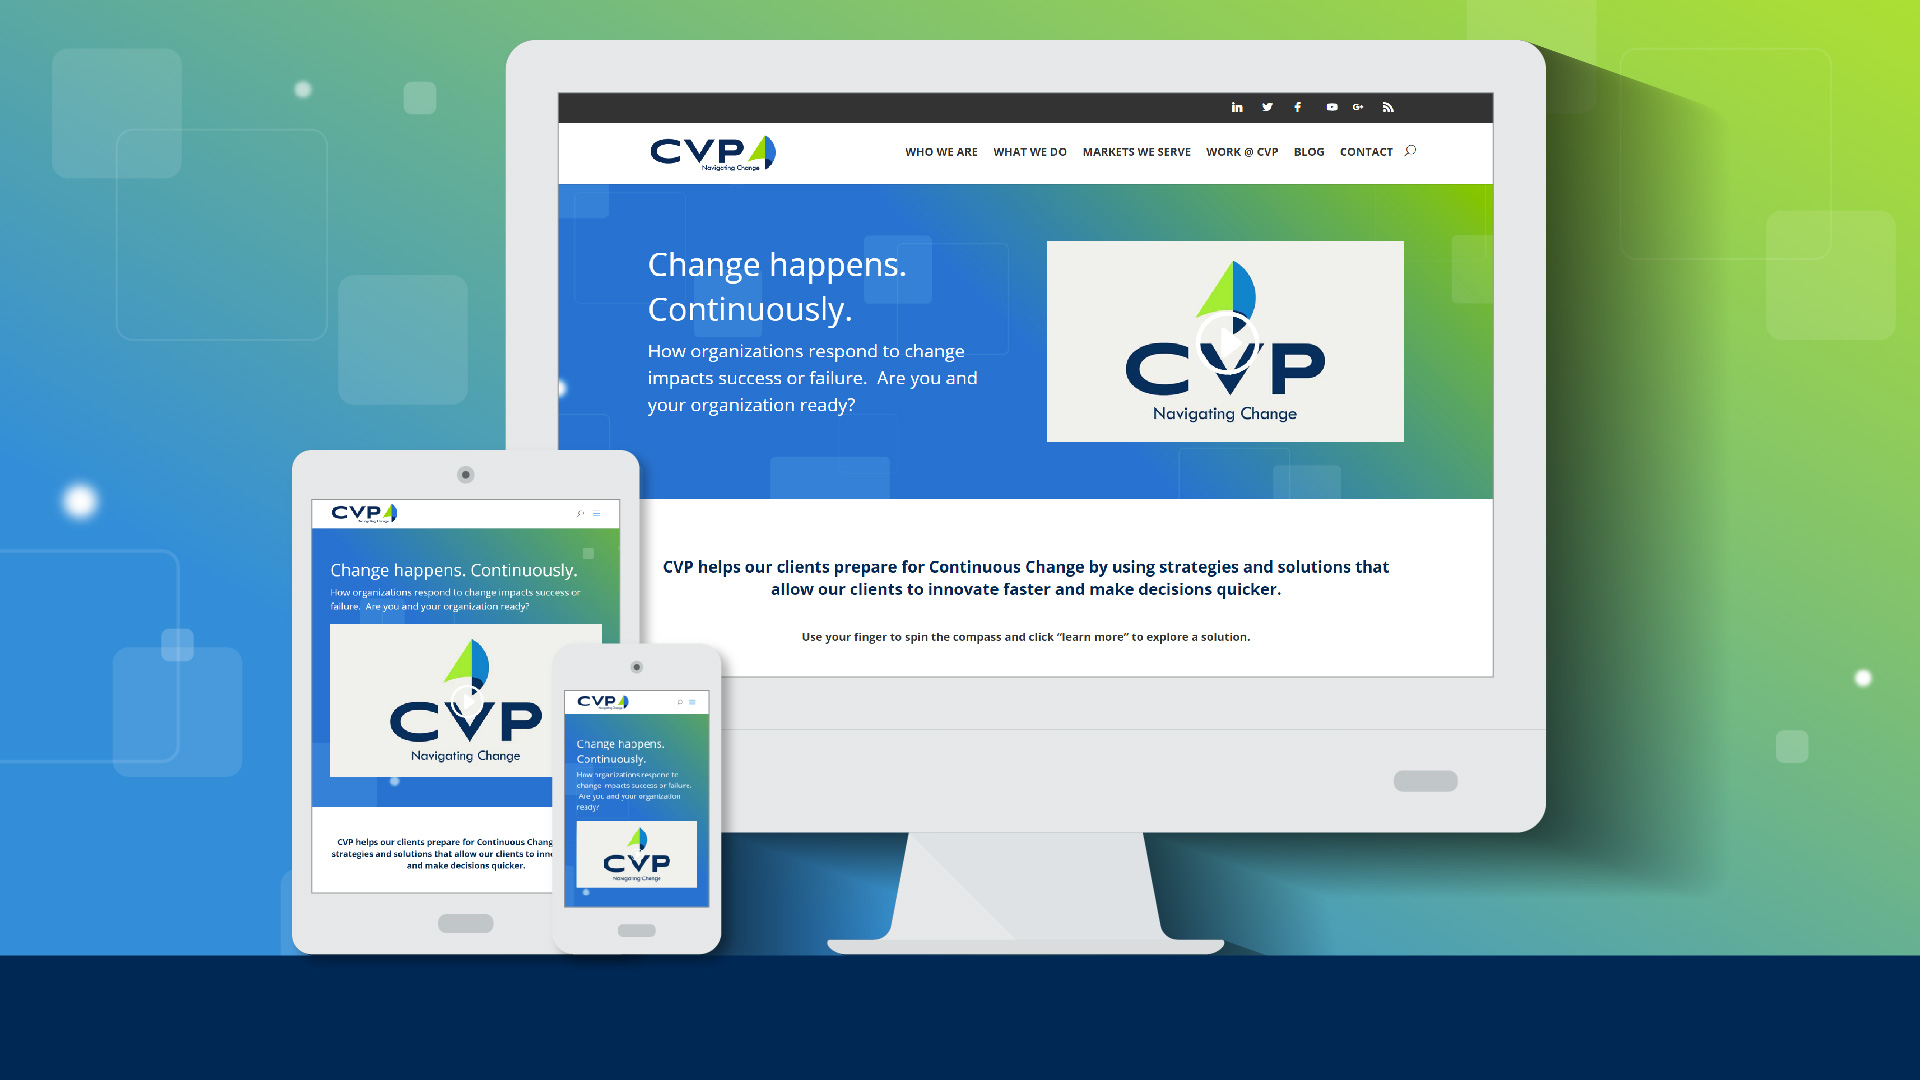 CVP is Navigating Change